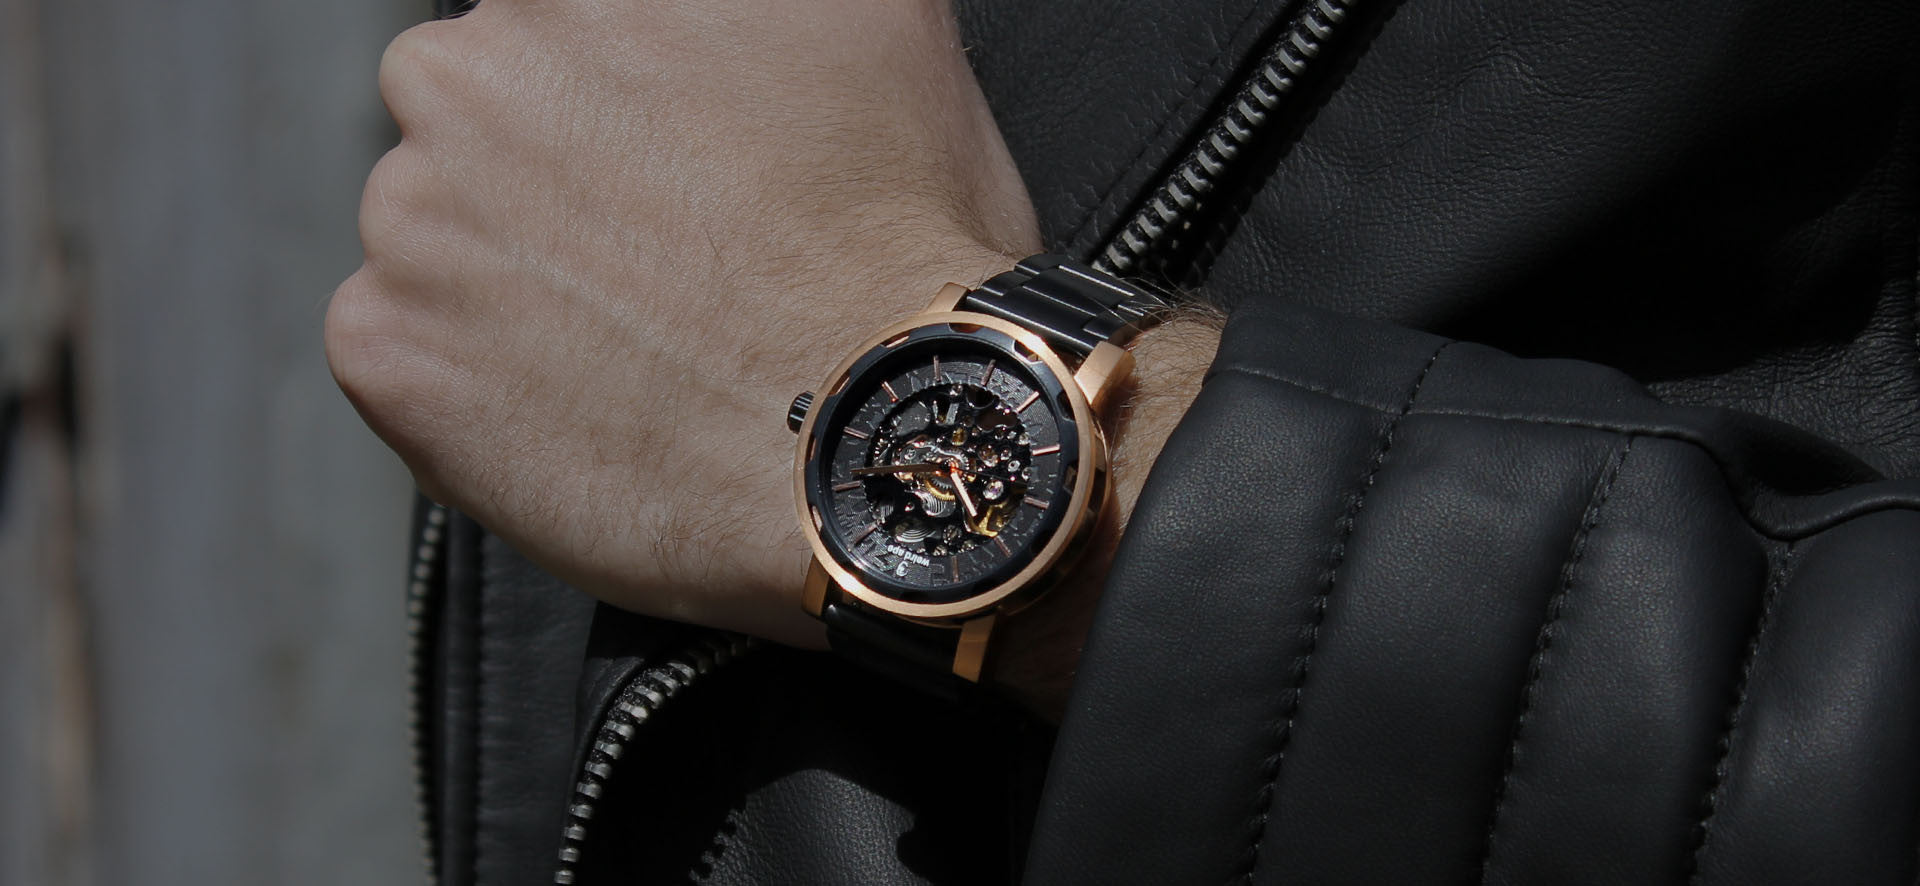 Rose gold skeleton watch with strap in a lifestyle image